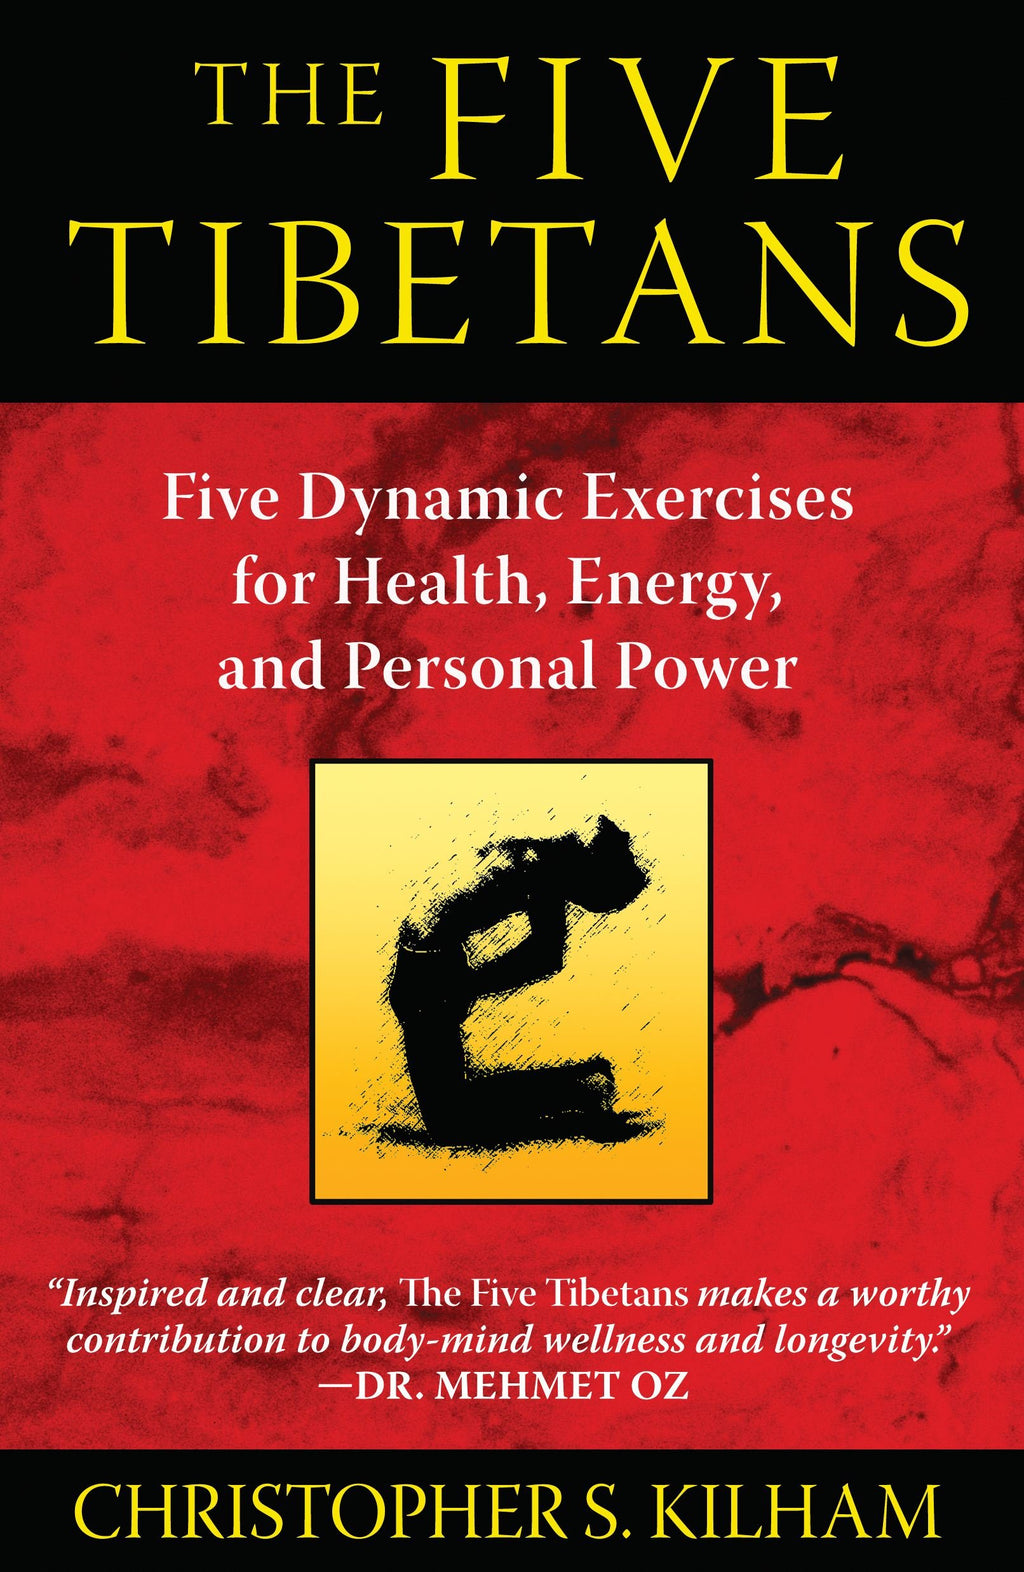 Five Tibetans by Christopher Kilham